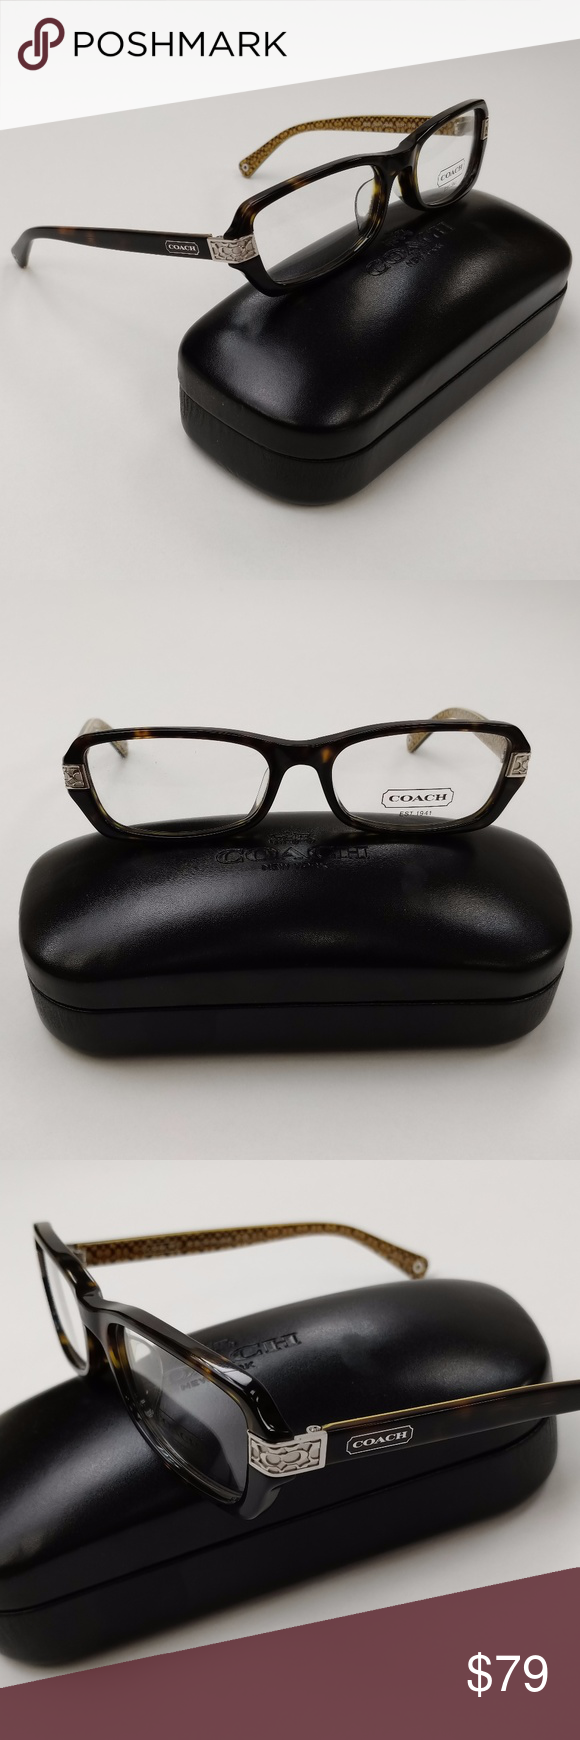 d94dbe48ecf Coach HC6005A (Marjorie) 5033 Eyeglasses  EUG132 Very good condition. No  defects except